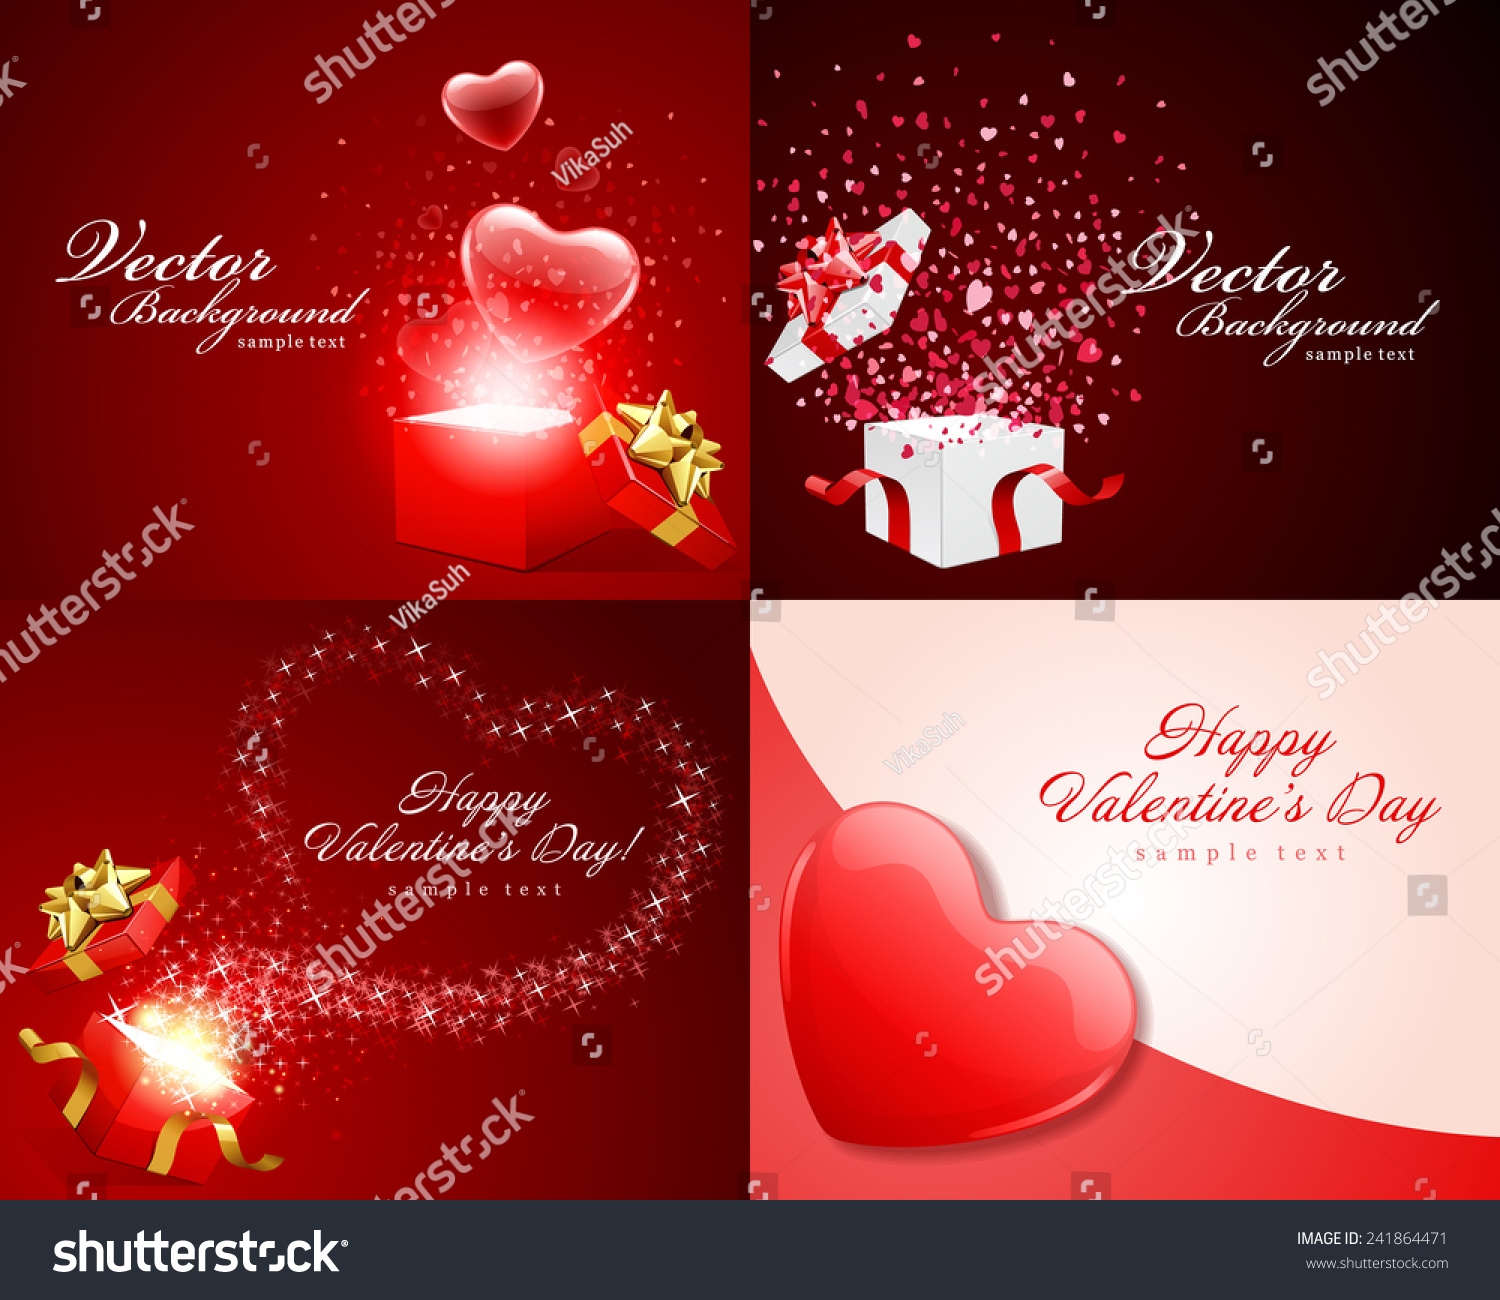 Set Happy Valentines Day Greetings Cards Stock Vector 241864471